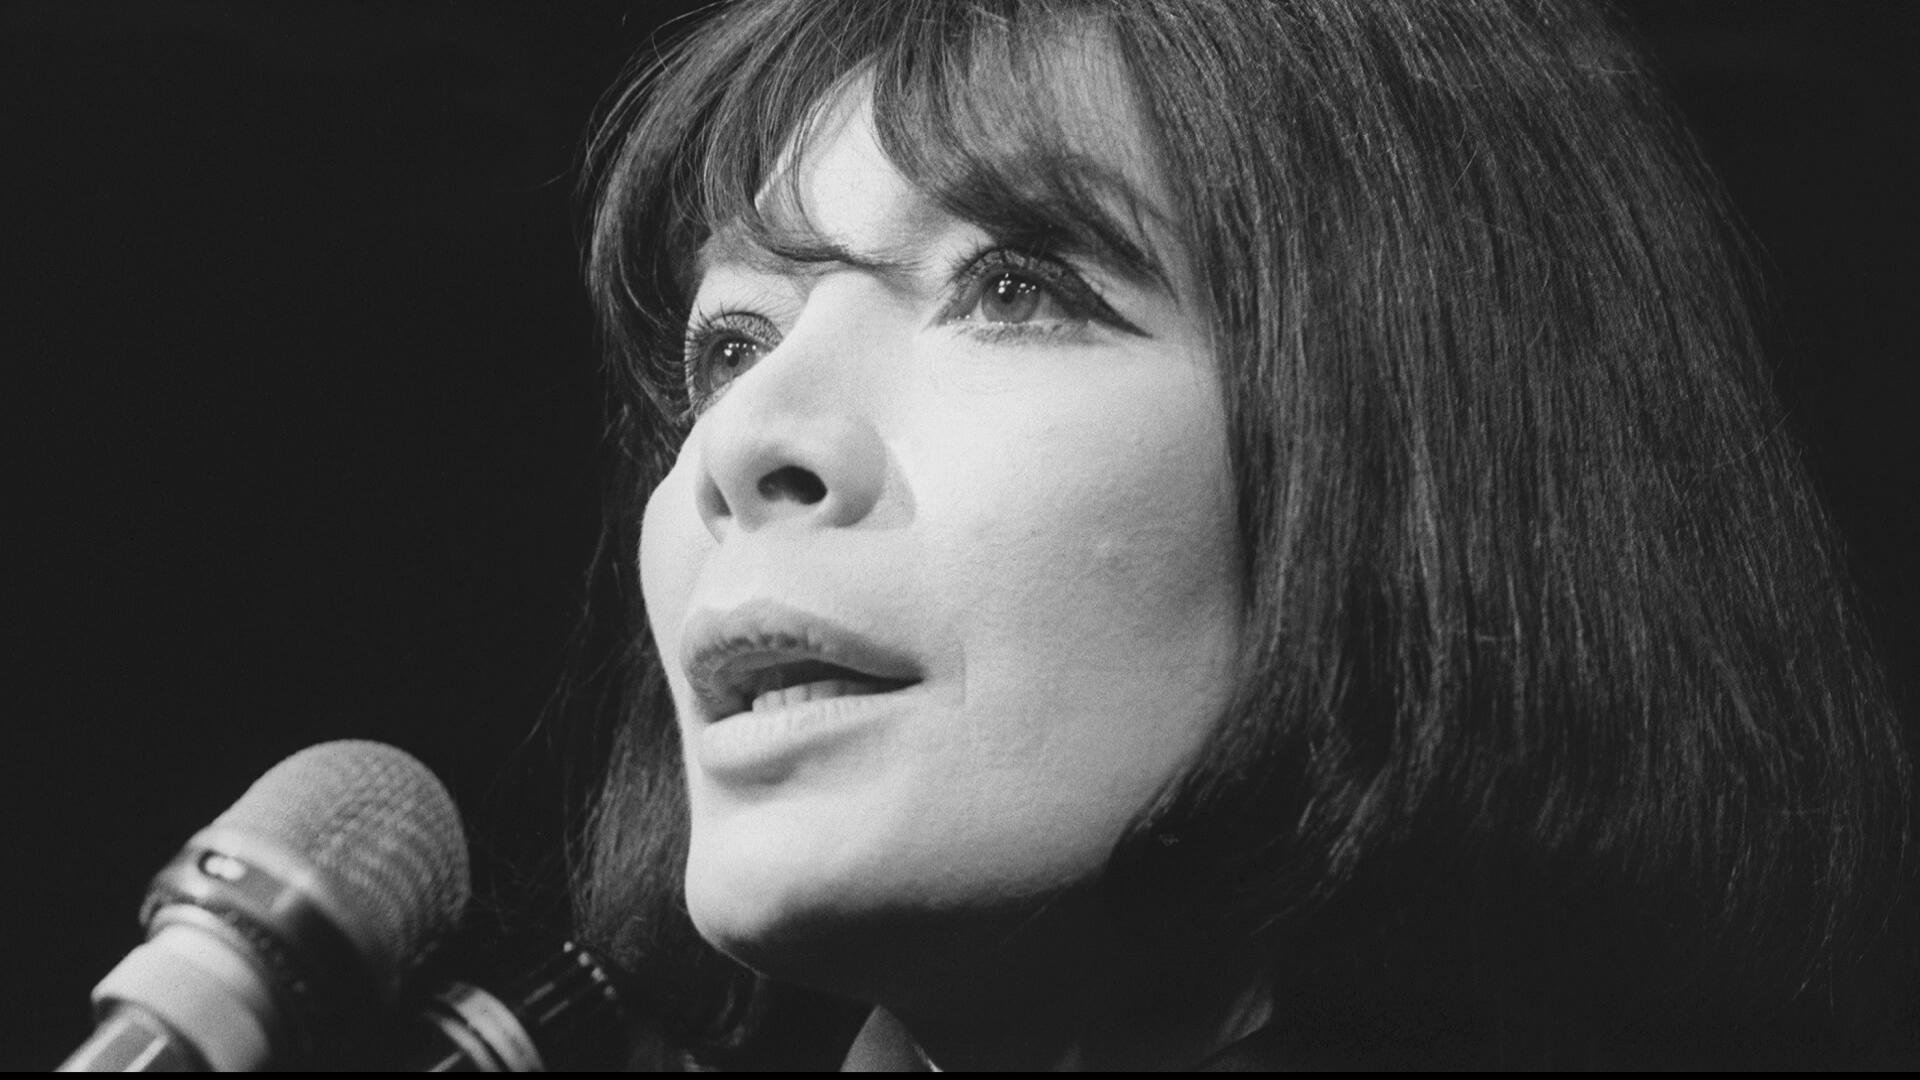 Juliette Gréco, the iconic French singer and actress, died on Wednesday aged 93.